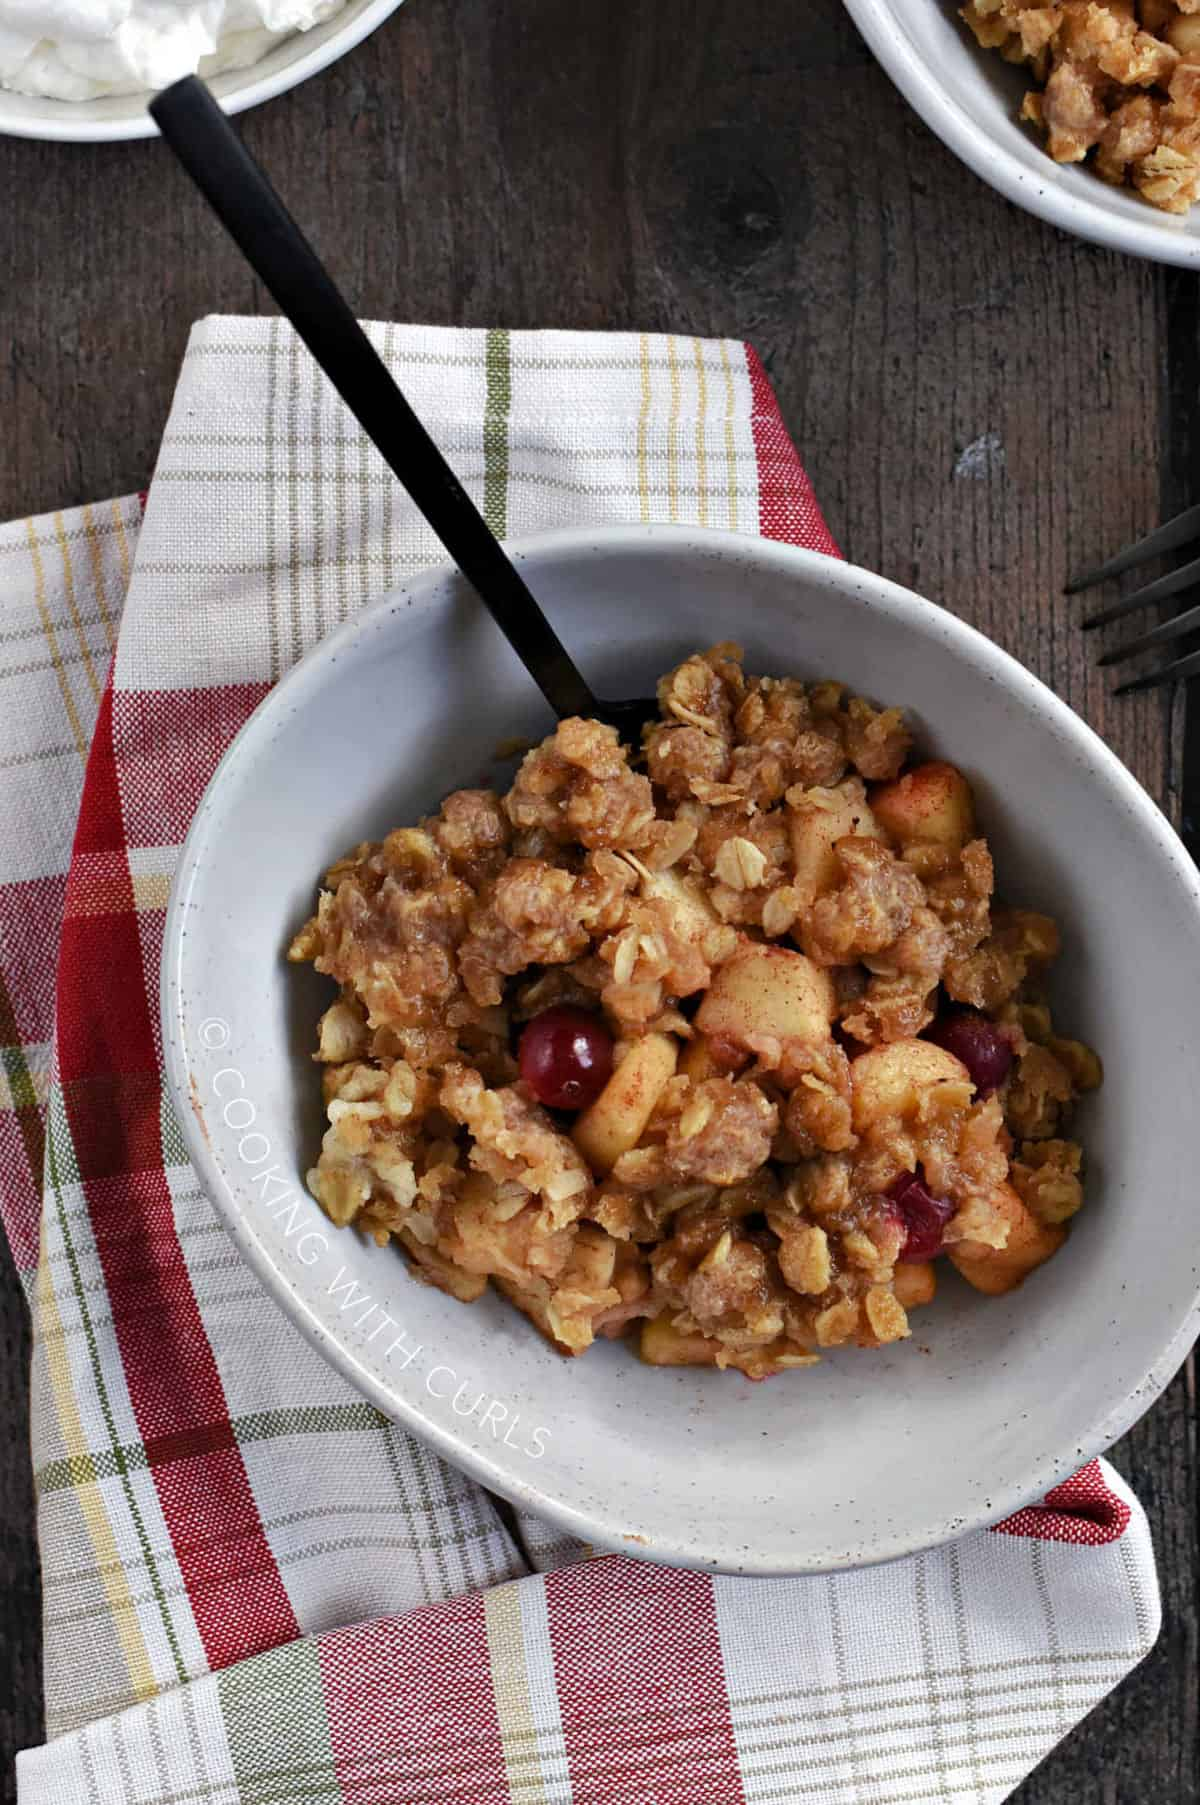 Looking down on a bowl of apple chunks, oats, and cranberries with a bowl of whipped cream in the upper left corner.